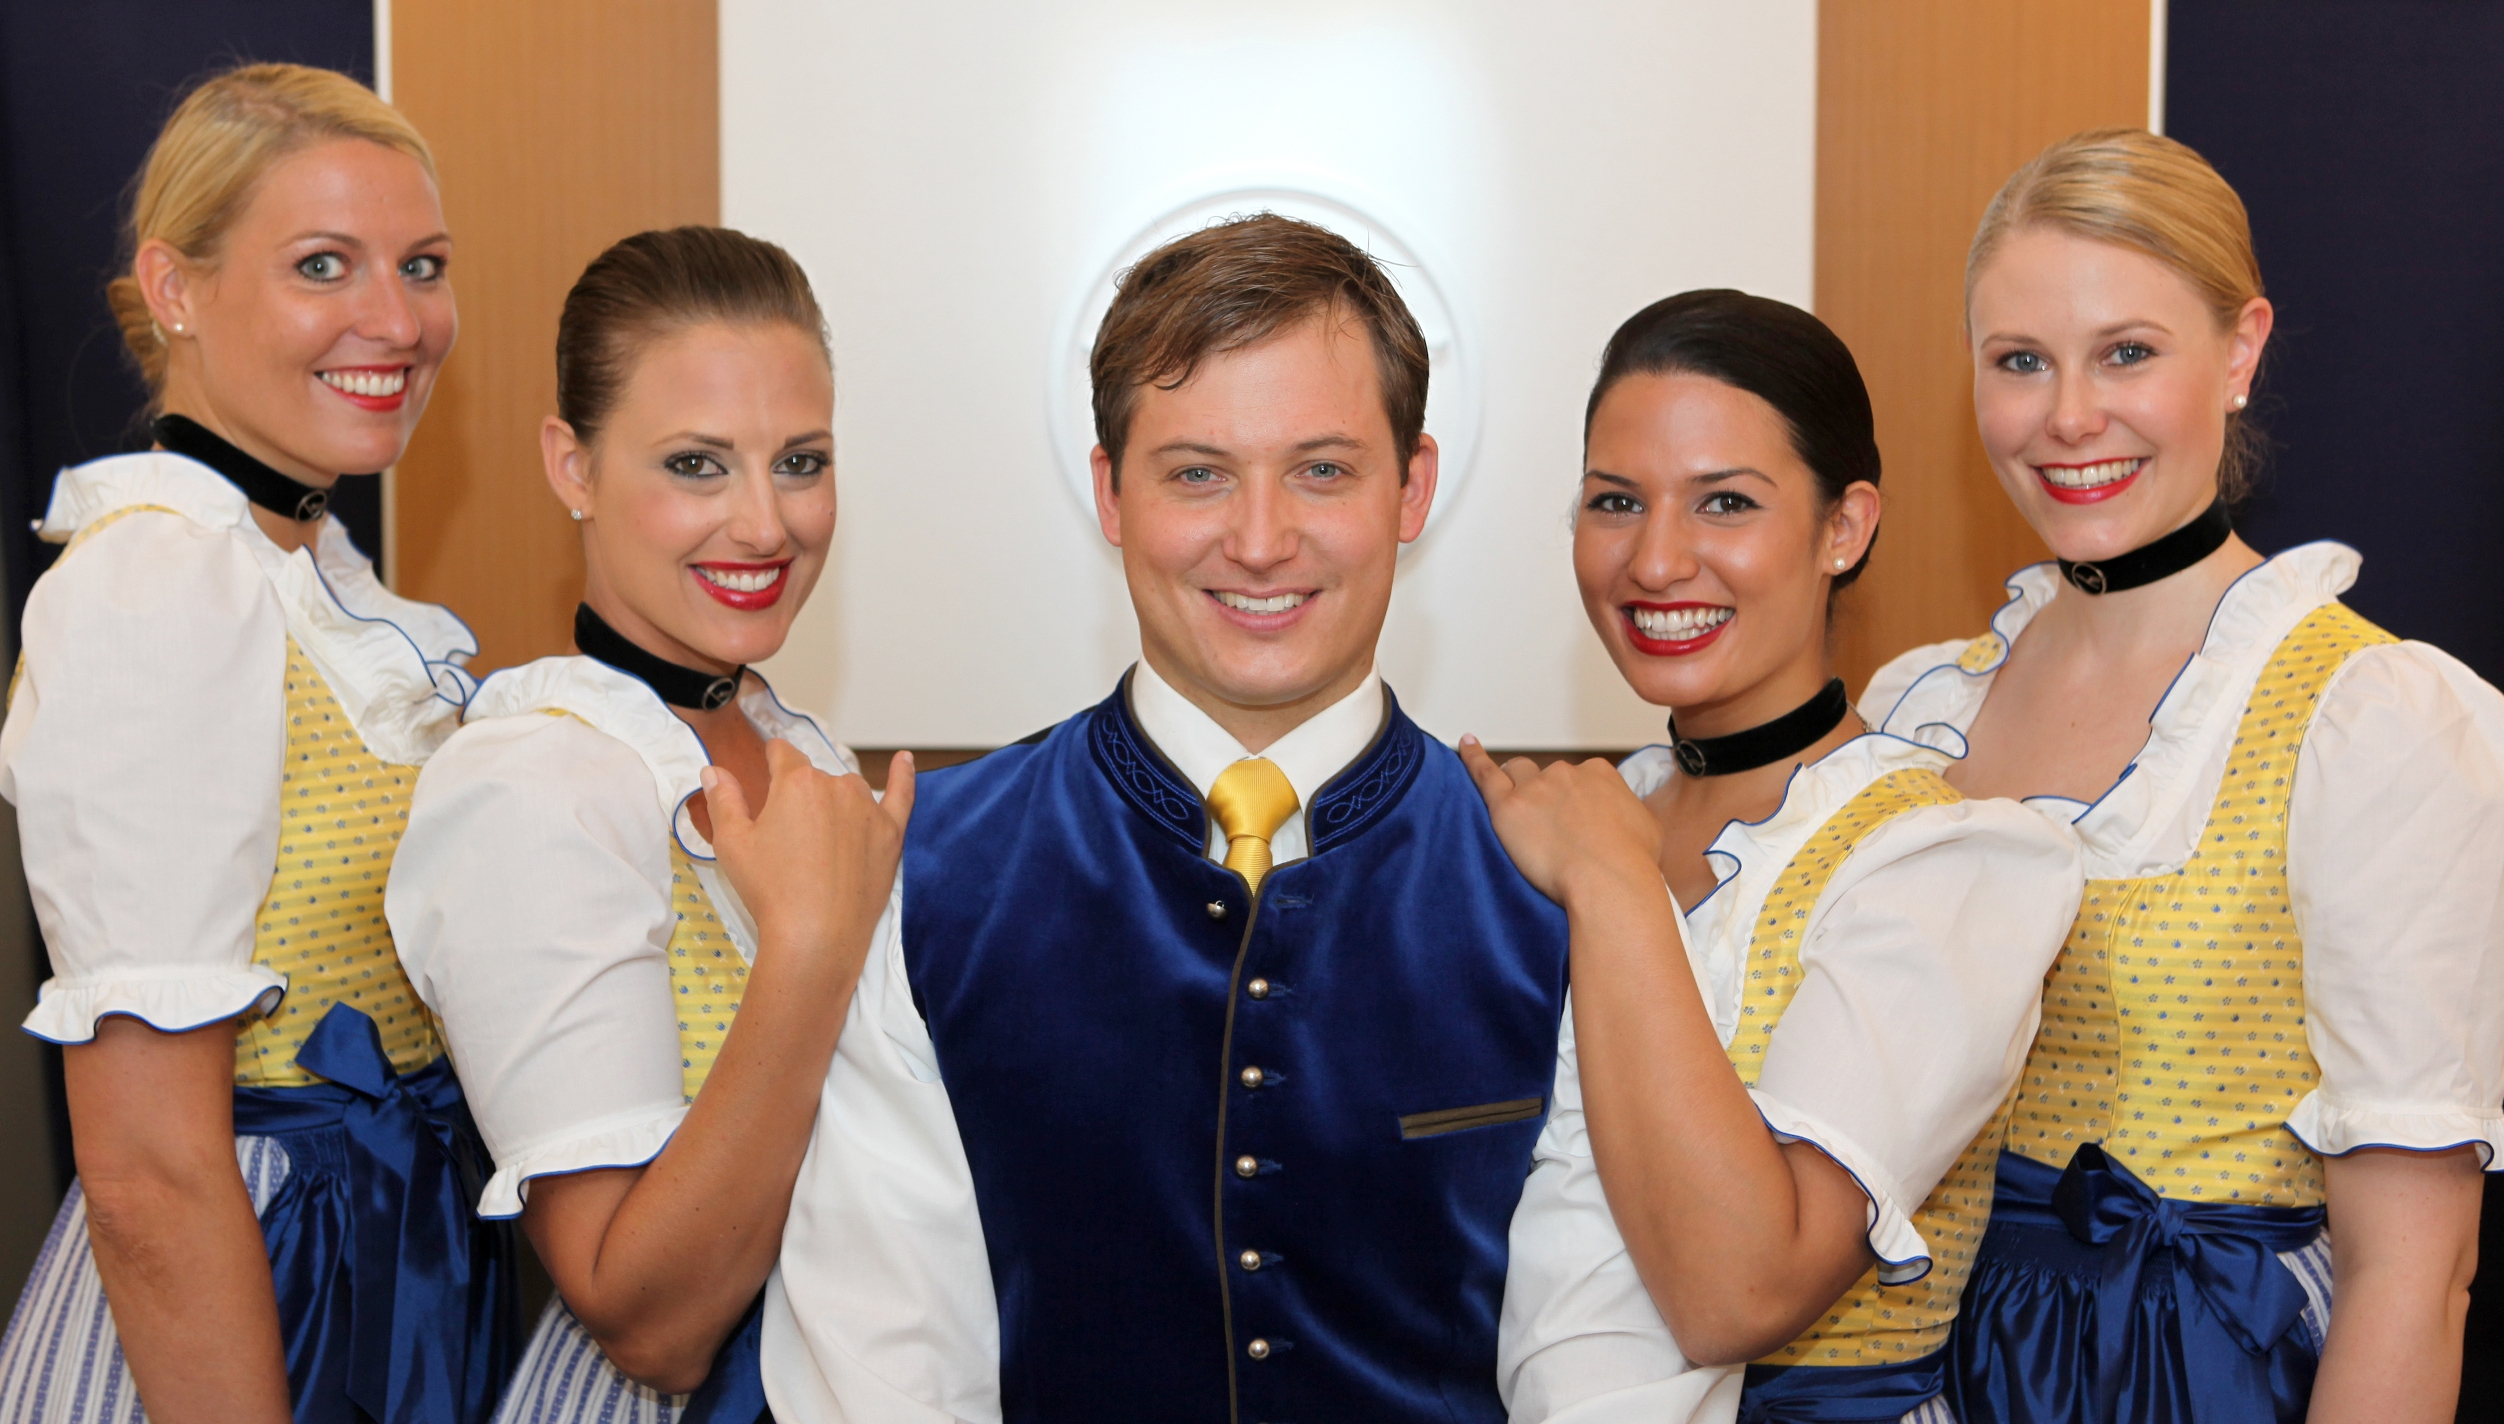 Lufthansa-stewardess-in-costume